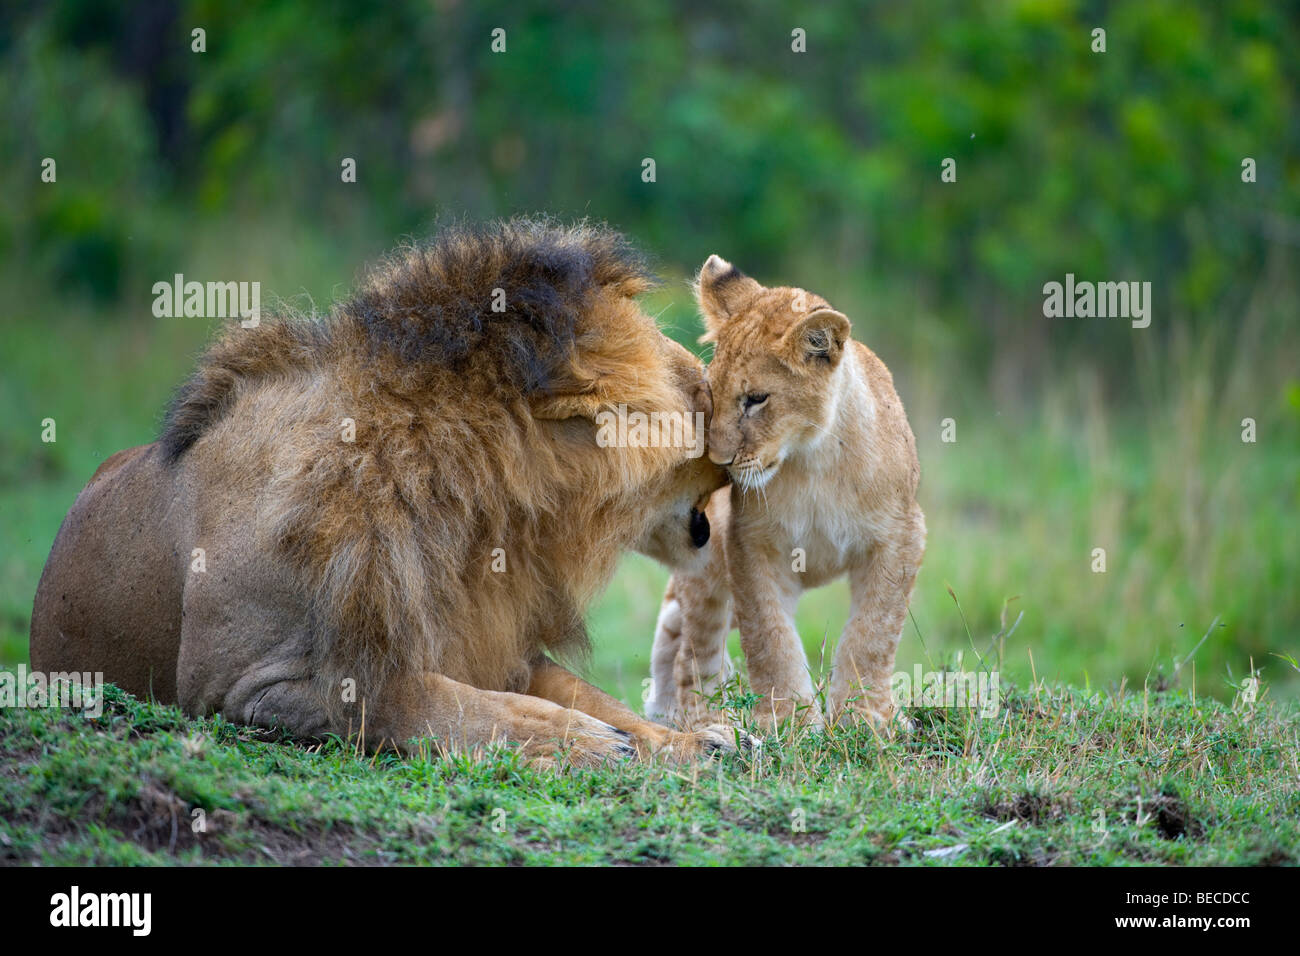 Lion (Panthera leo) cleaning cub, Masai Mara National Reserve, Kenya, East Africa - Stock Image